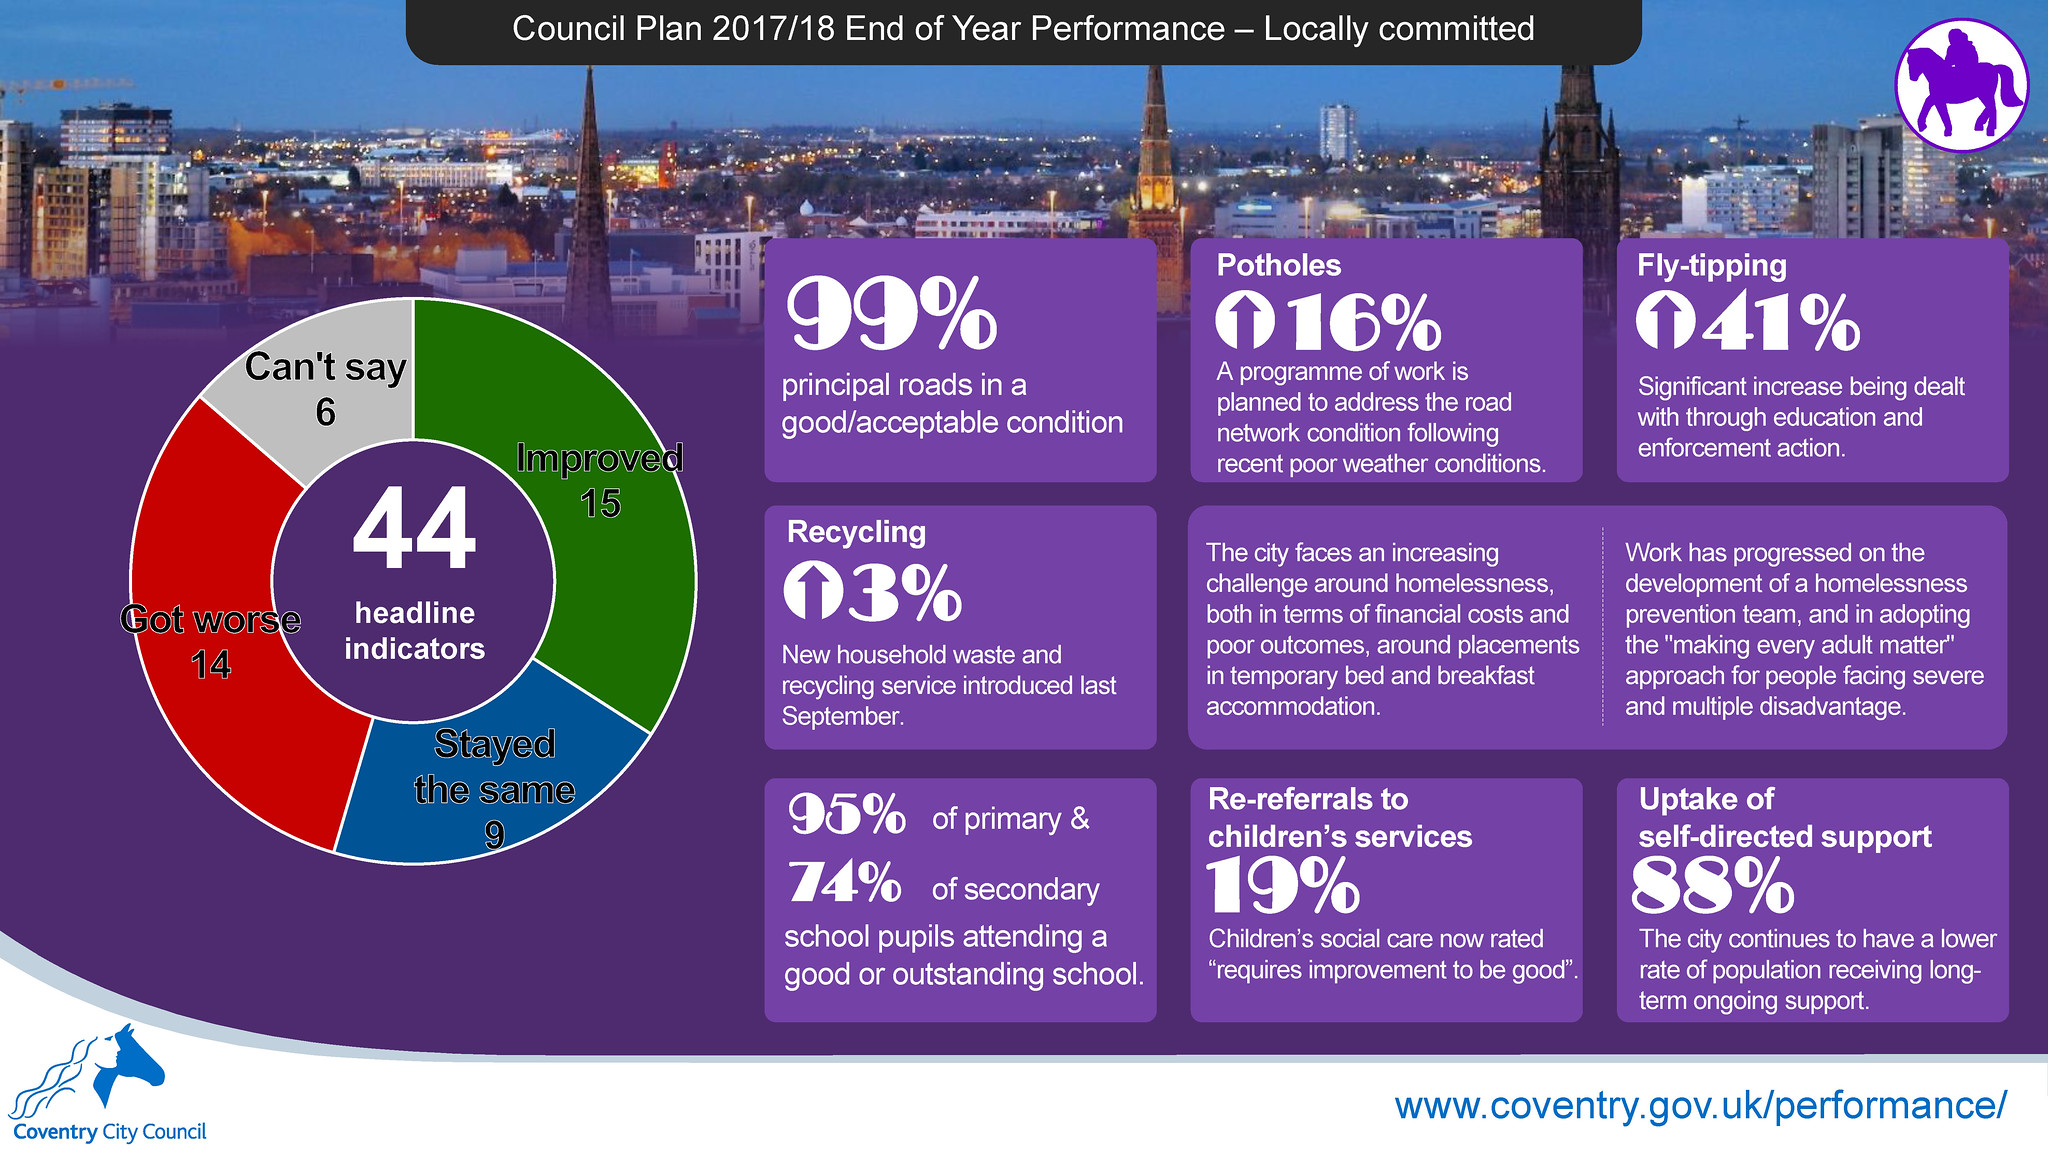 Locally committed - Council Plan 2017-18 end of year performance report infographic - Coventry City Council